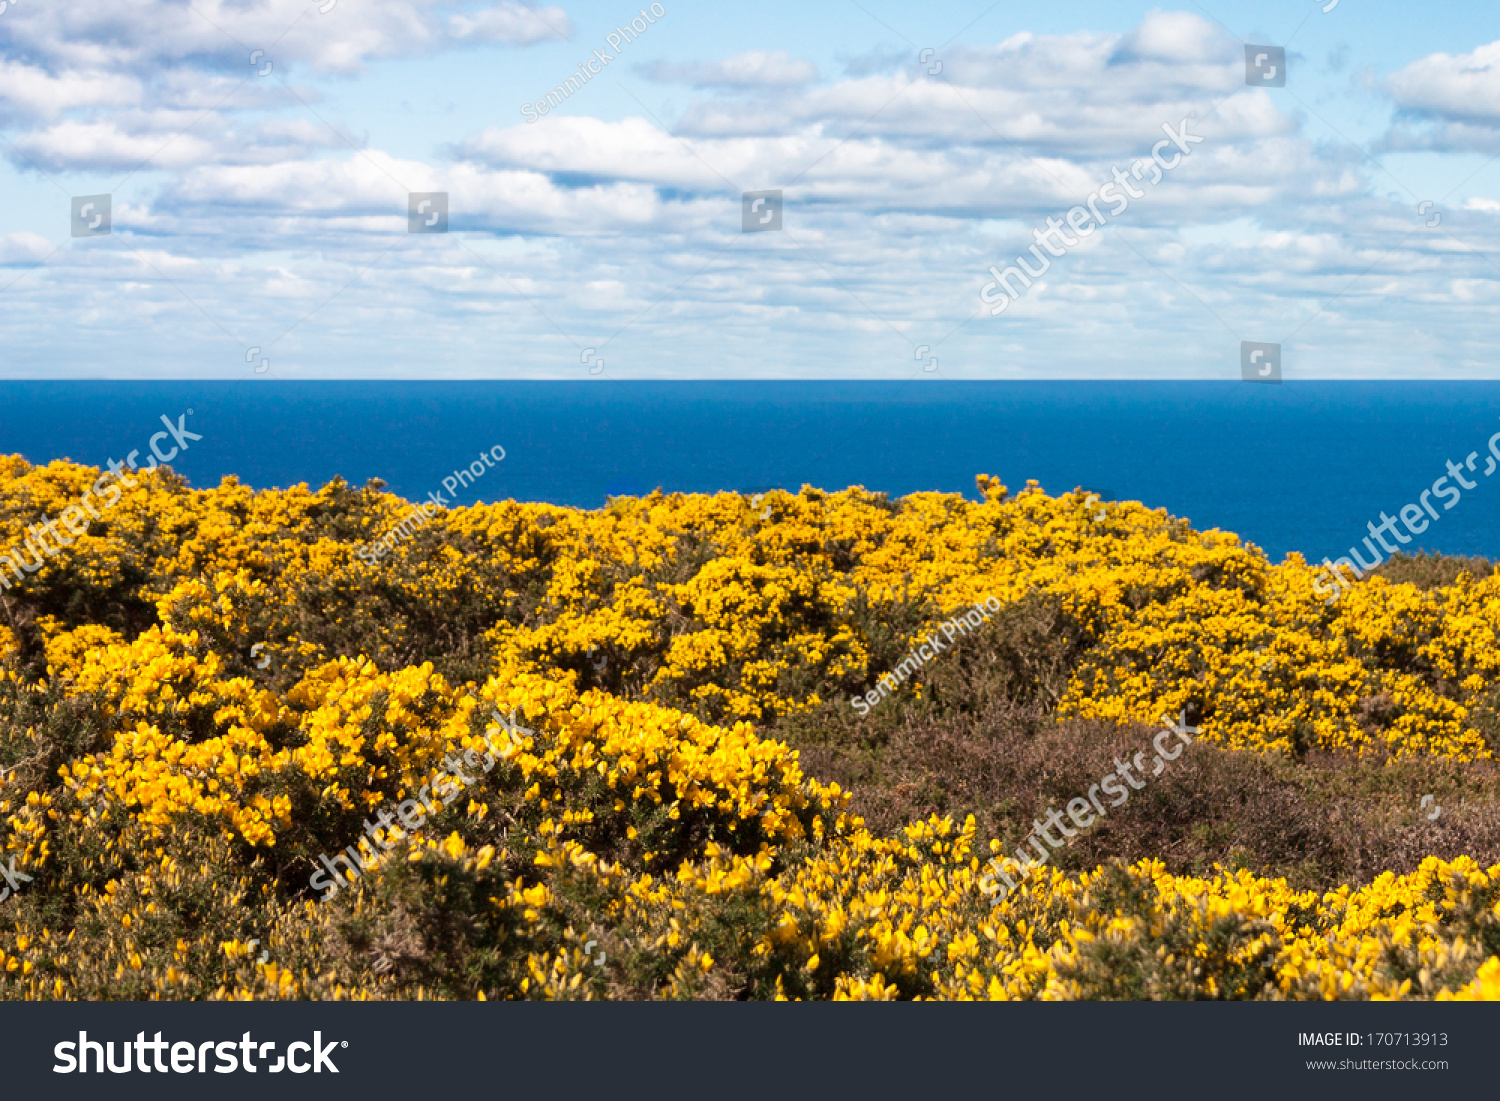 Yellow flowers on howth cliffs ireland stock photo 170713913 yellow flowers on howth cliffs in ireland against a cloudy deep blue sky mightylinksfo Images